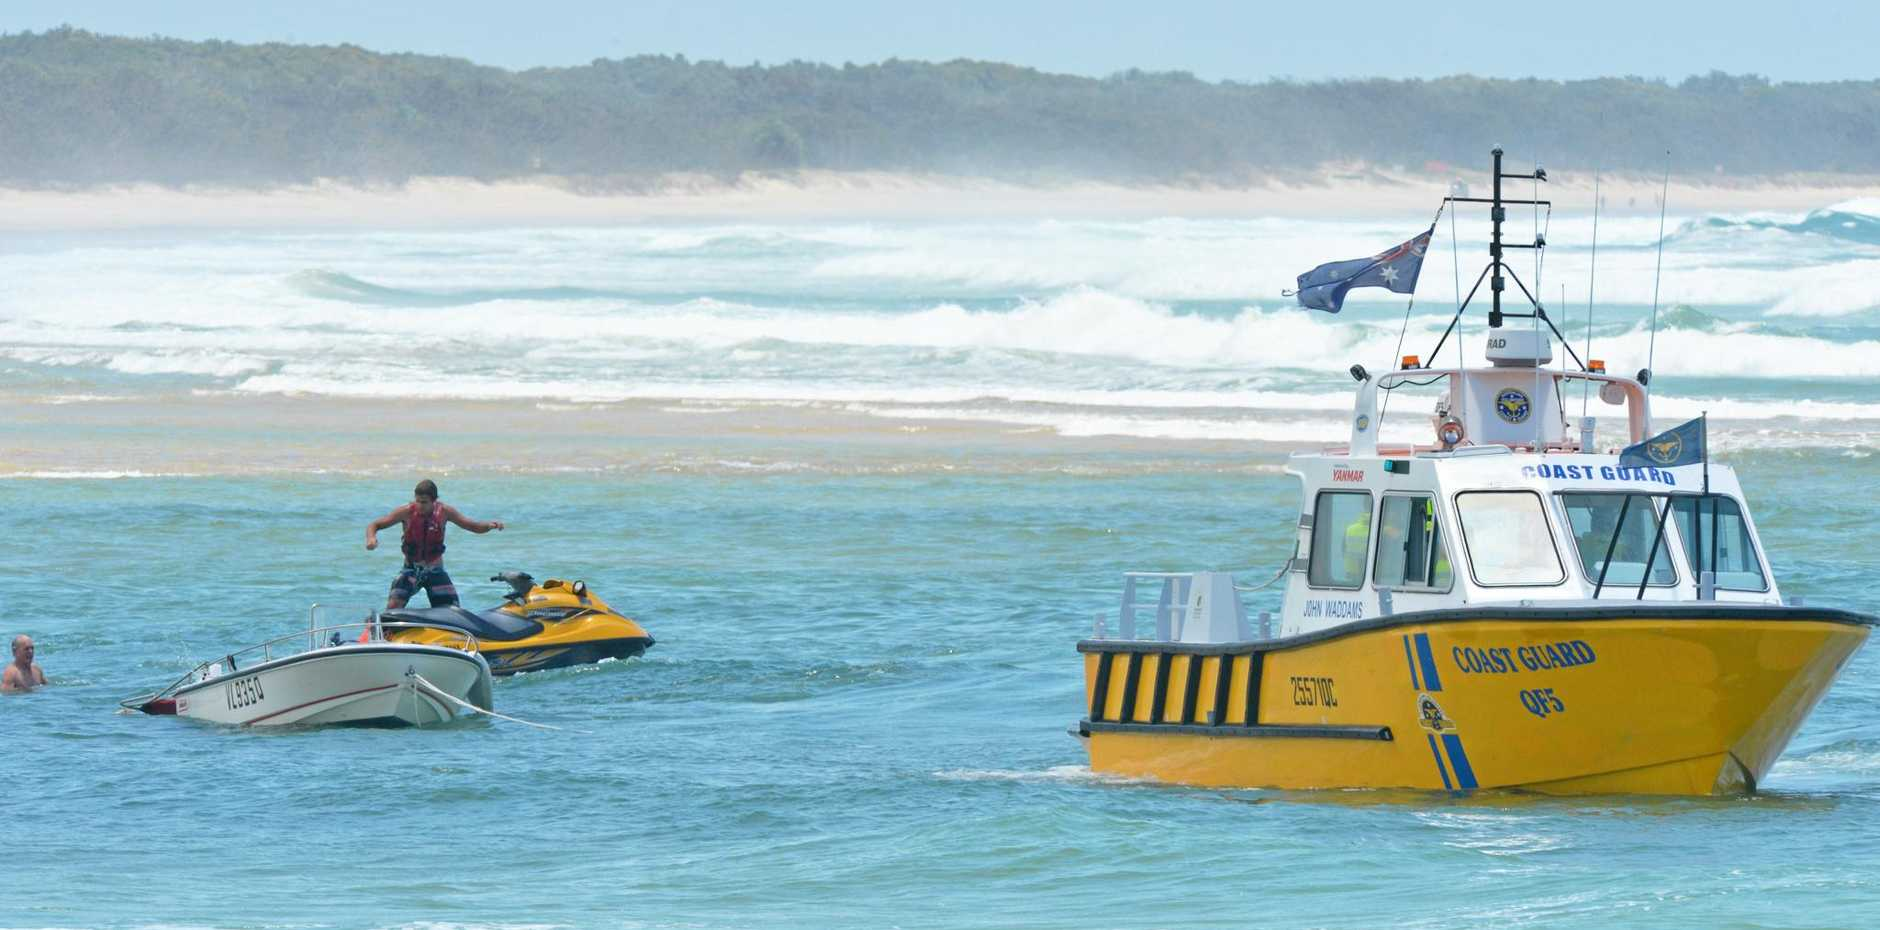 FLASHBACK: Two boats capsized on Noosa bar. Police and Coastguard were on scene in 2012 to assist.